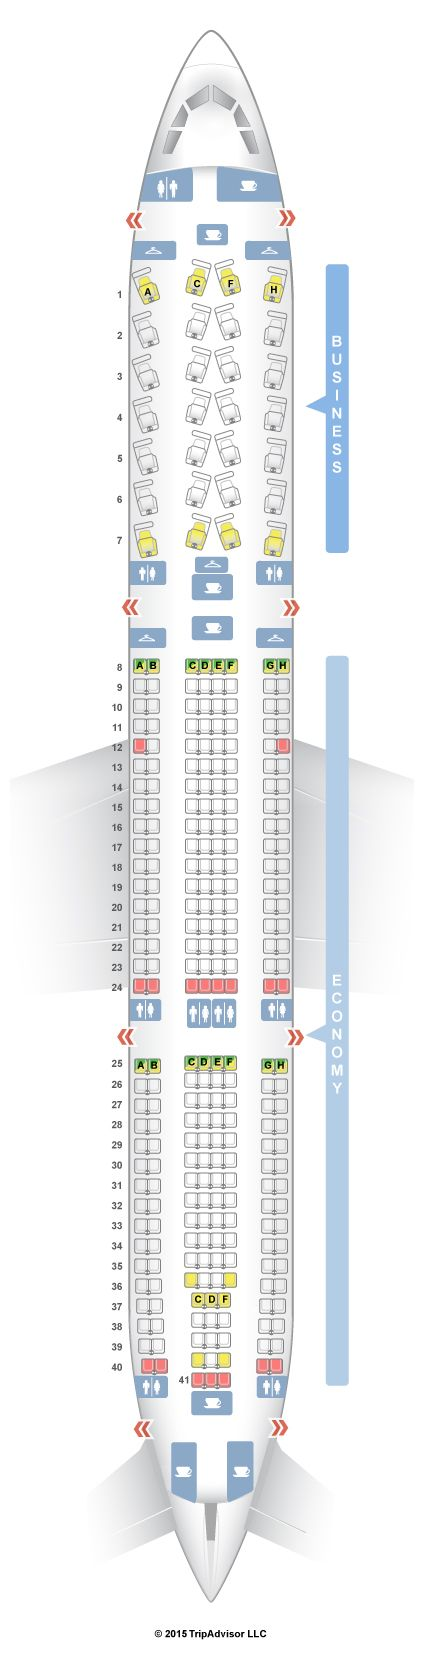 SeatGuru Seat Map American Airlines Airbus A330-300 (333)